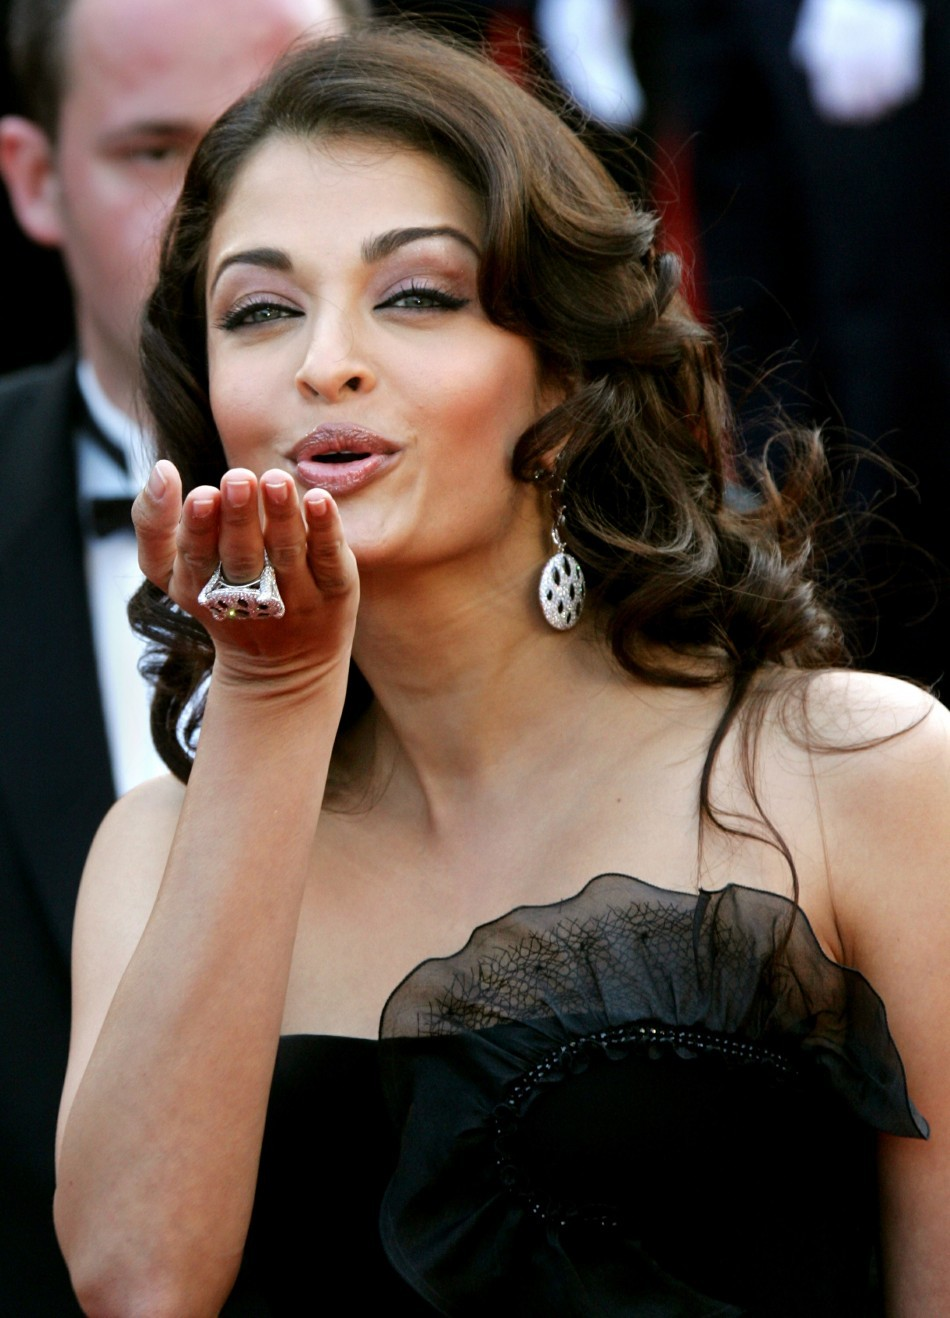 Indian actress Aishwarya Rai blows a kiss as she attend the world premiere of